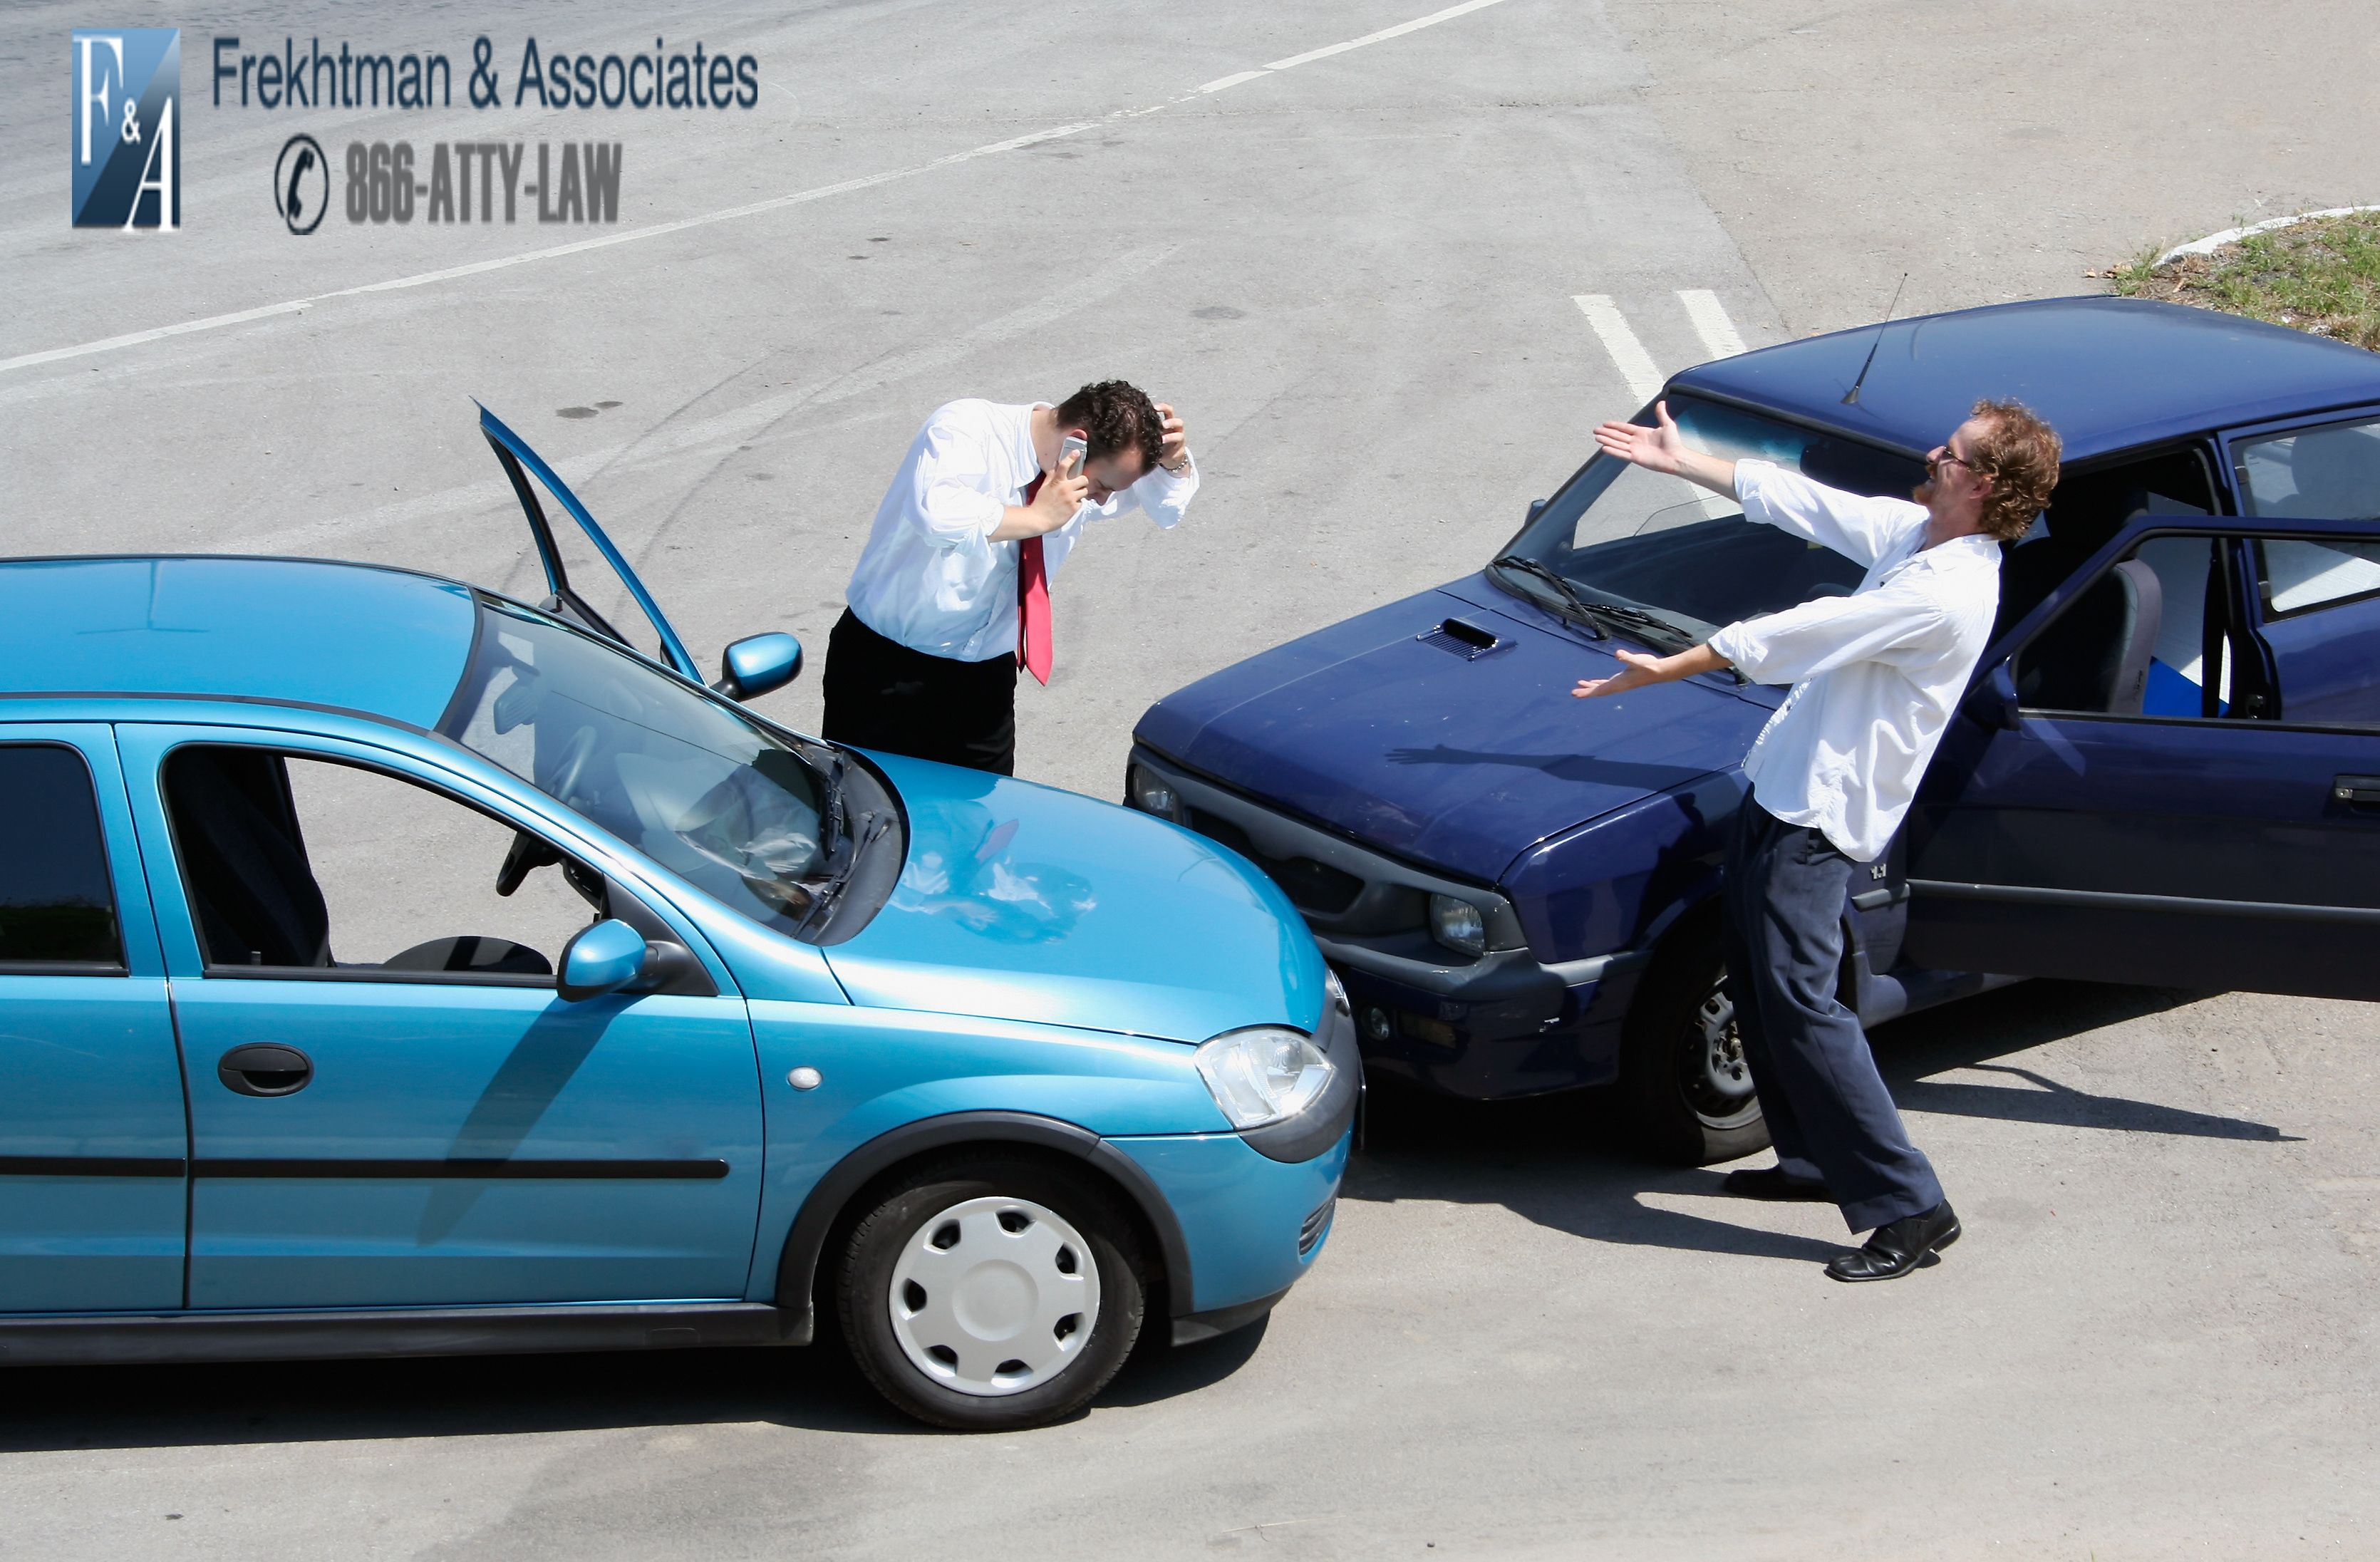 A Reputable Firm That Specializes In Handling Truck Accident